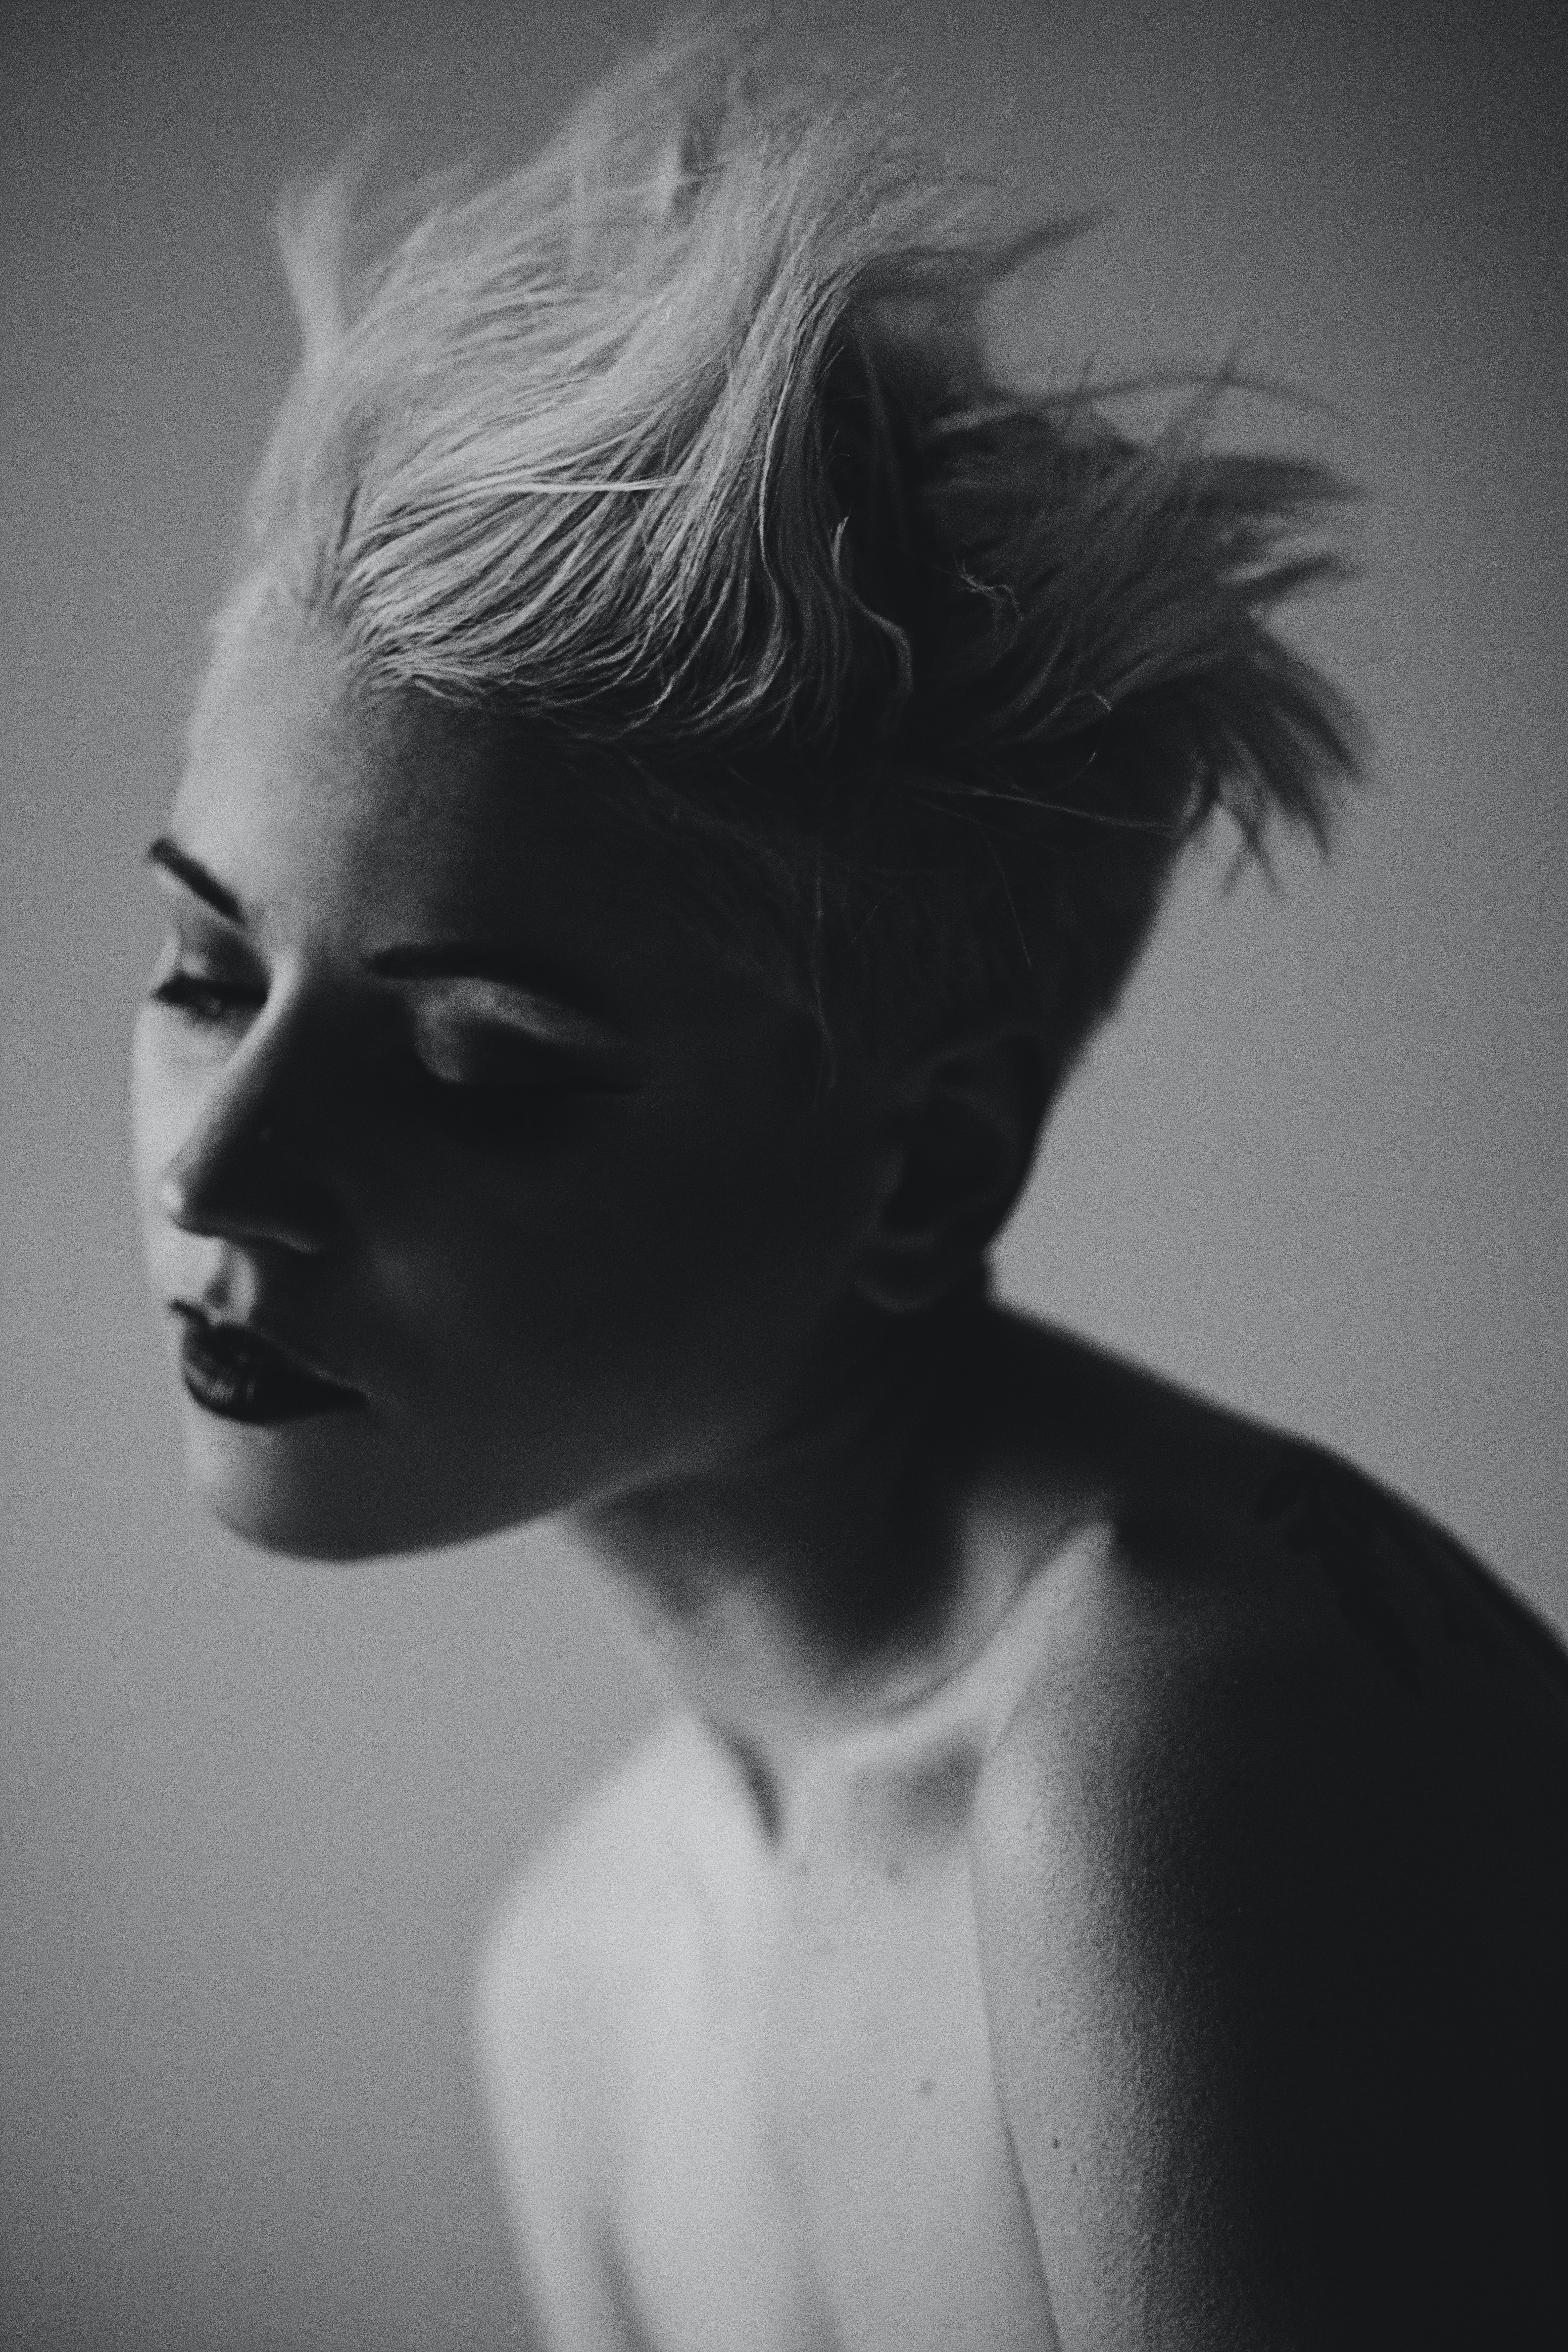 Black and white shot shot of shirtless woman with short blonde spiked hair